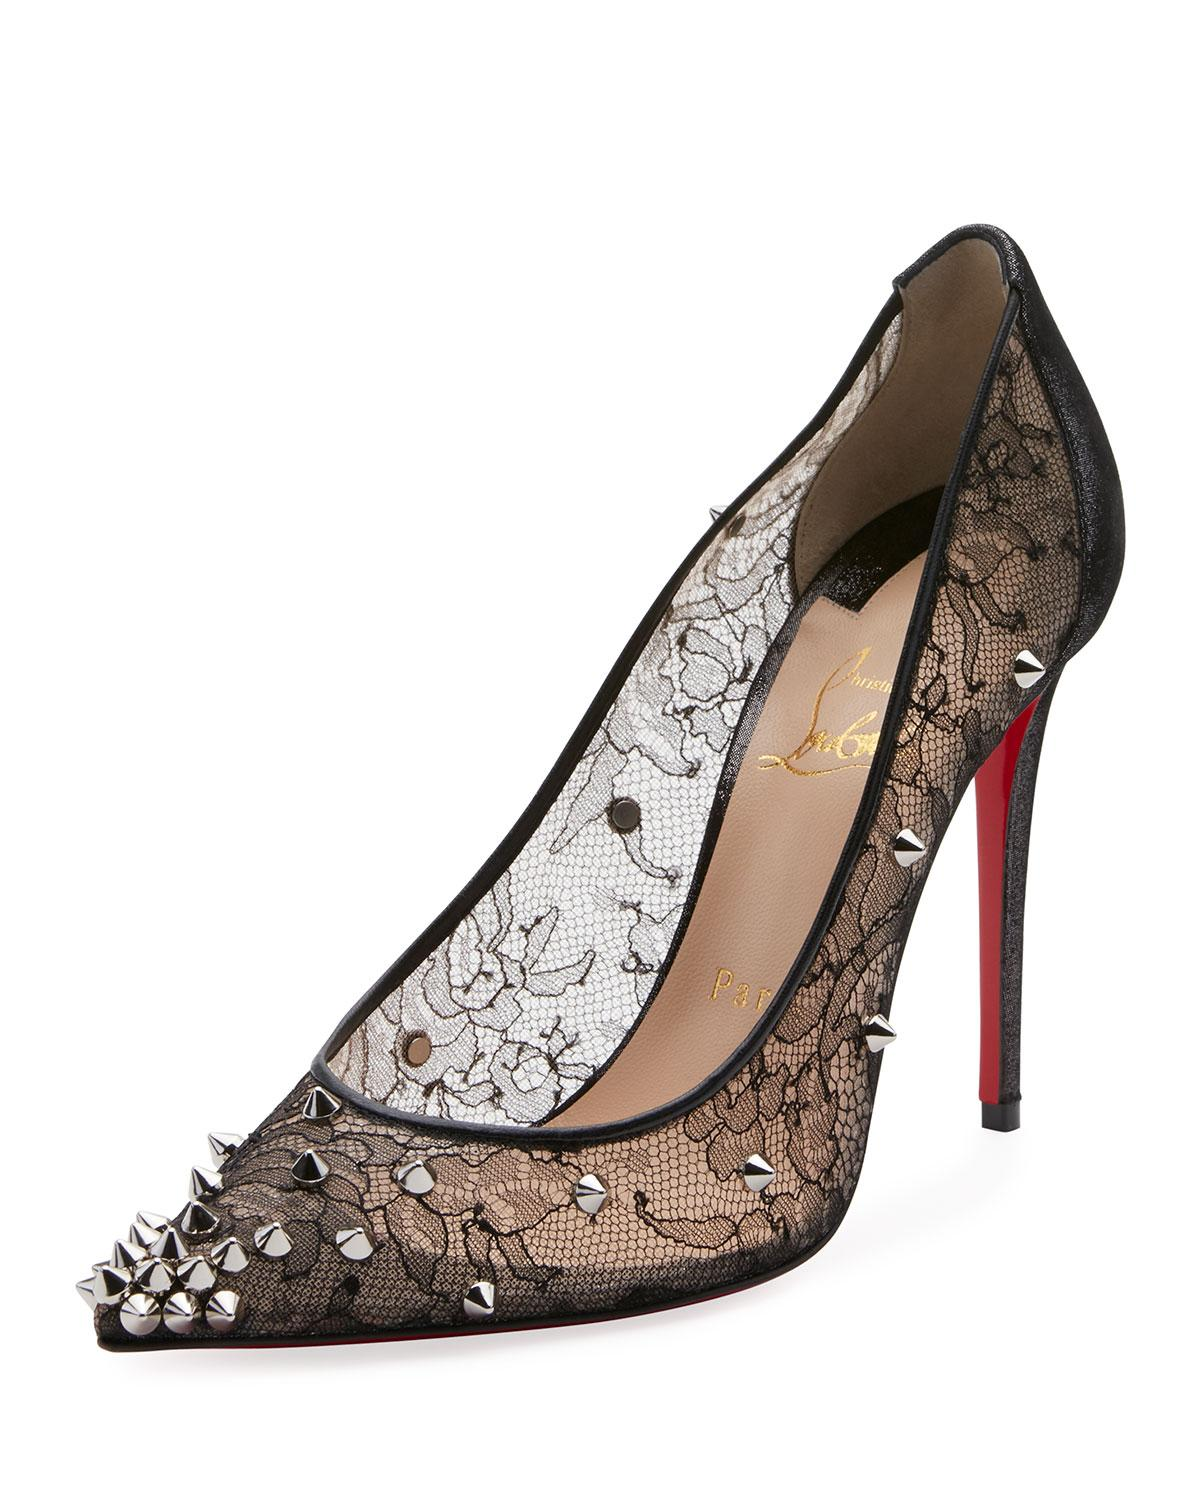 edd1e48ceec6 Christian Louboutin Decollete 554 Spiked Lace Red Sole Pumps In ...